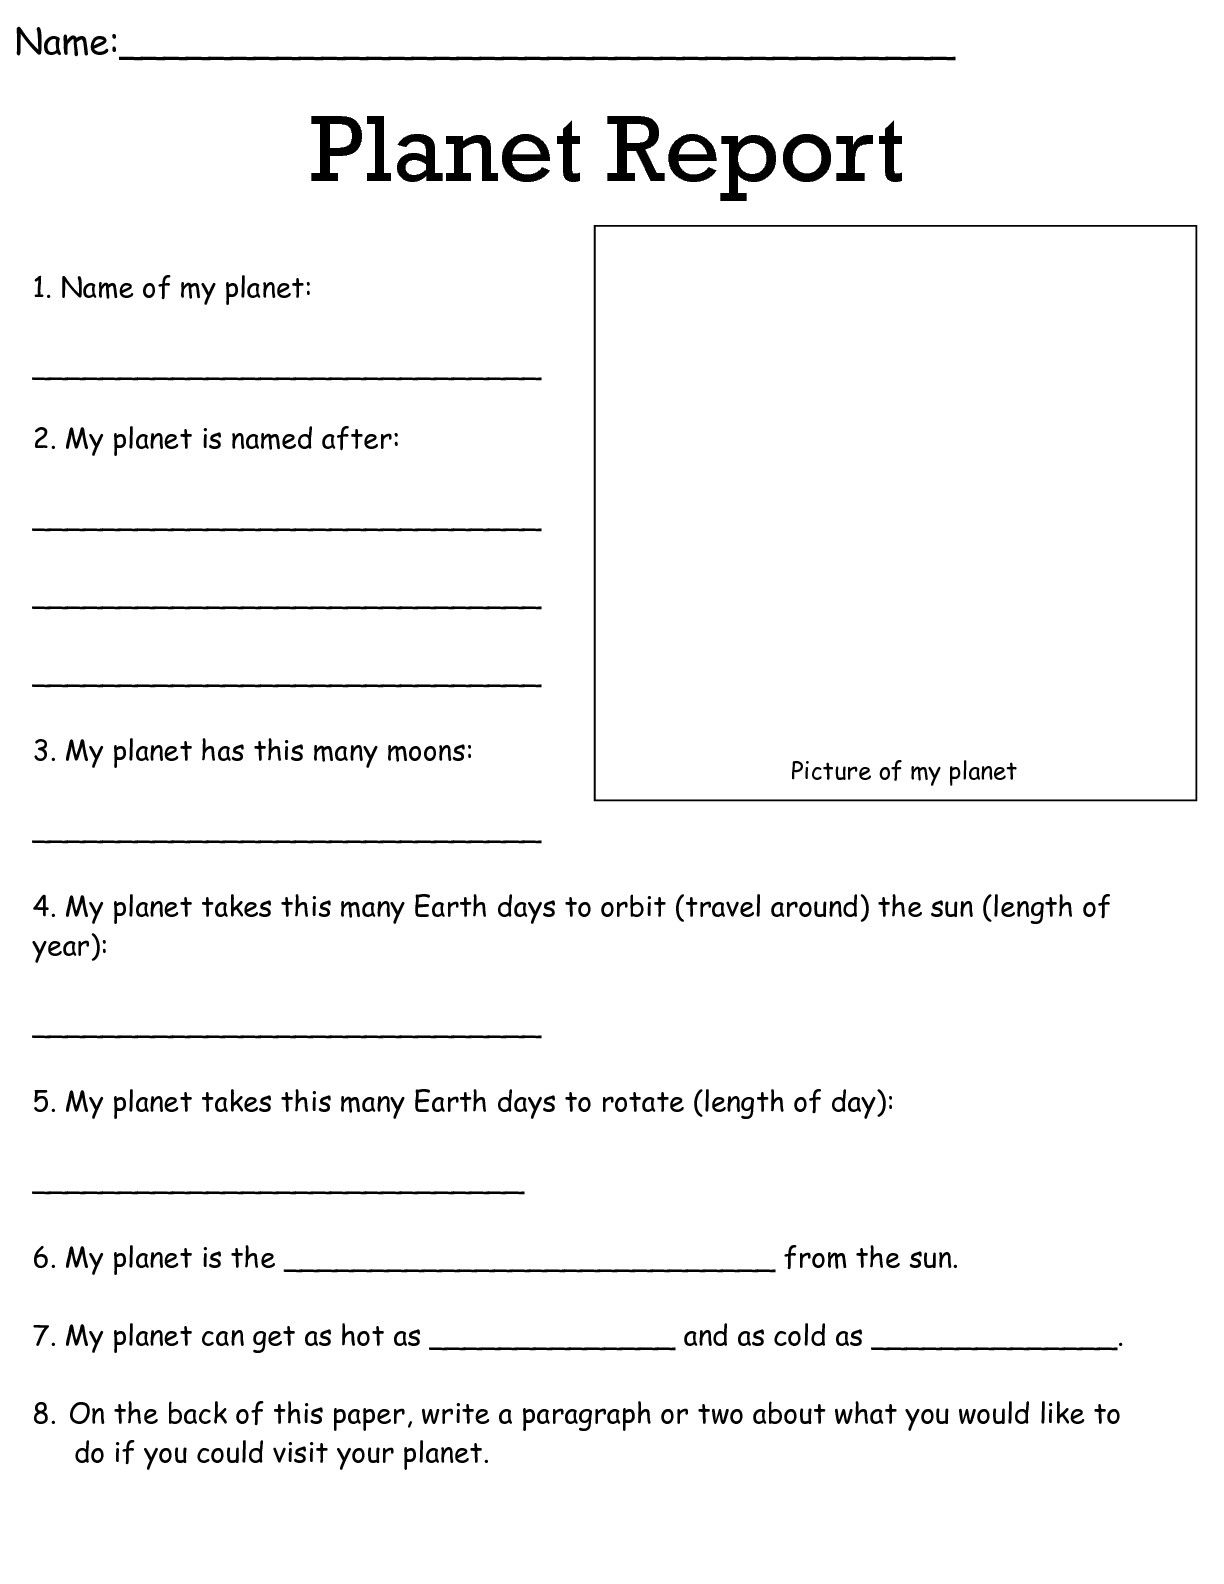 Job Worksheets 5Th &6Th | Science Worksheets Science Worksheets | 5Th Grade Science Printable Worksheets